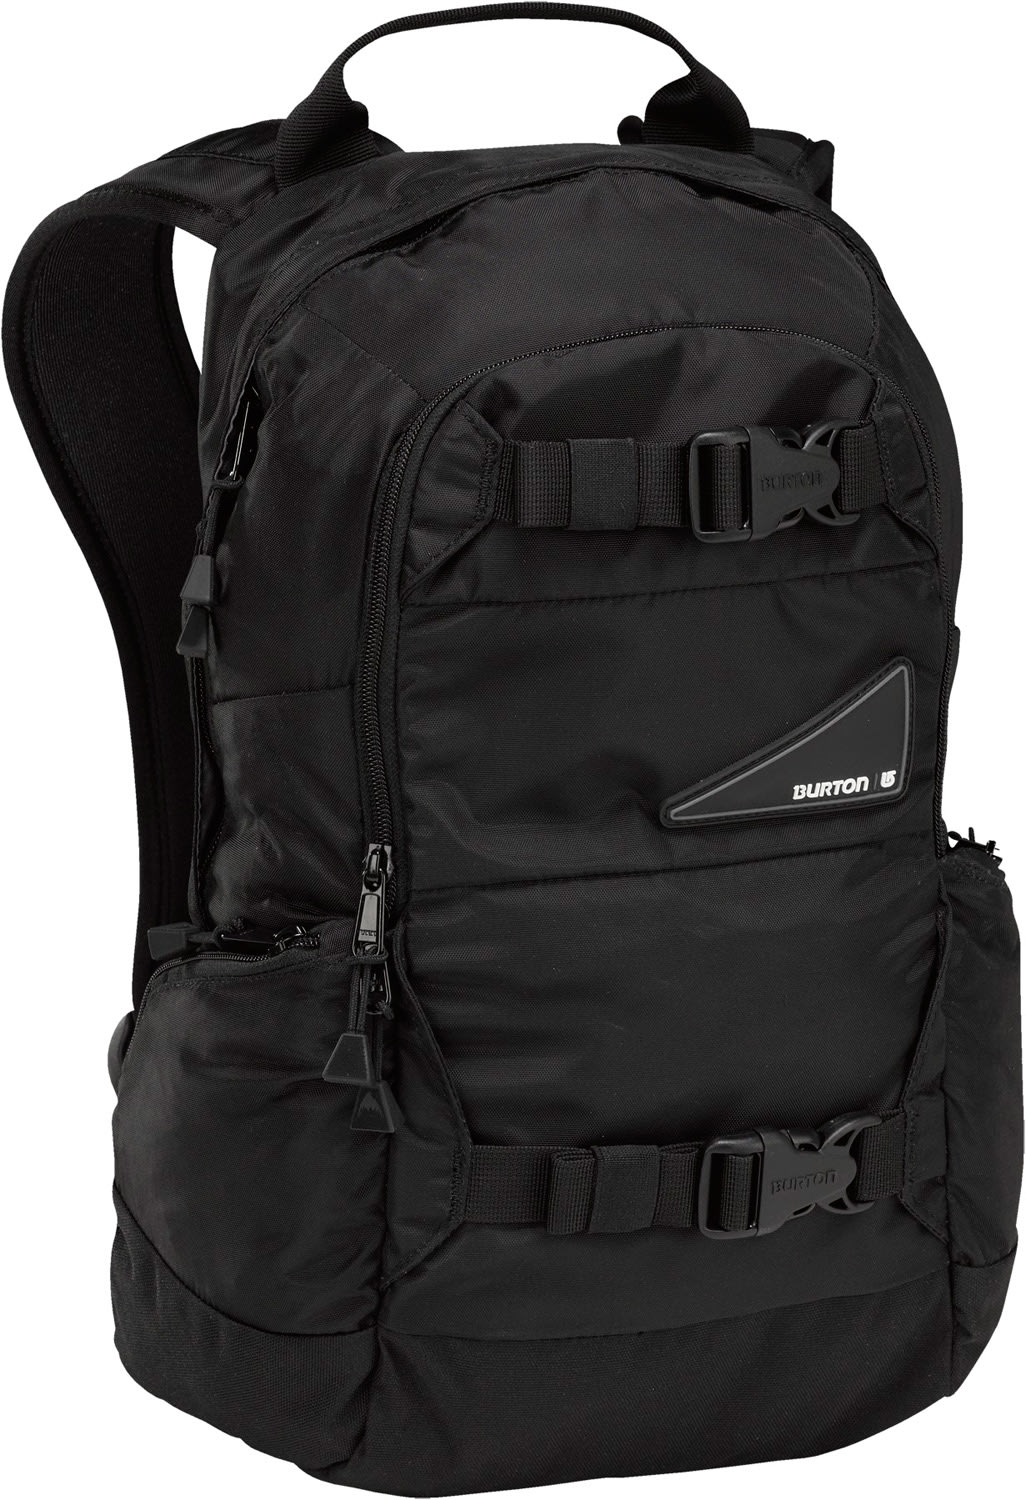 Burton Day Hiker Backpack True Black 12L